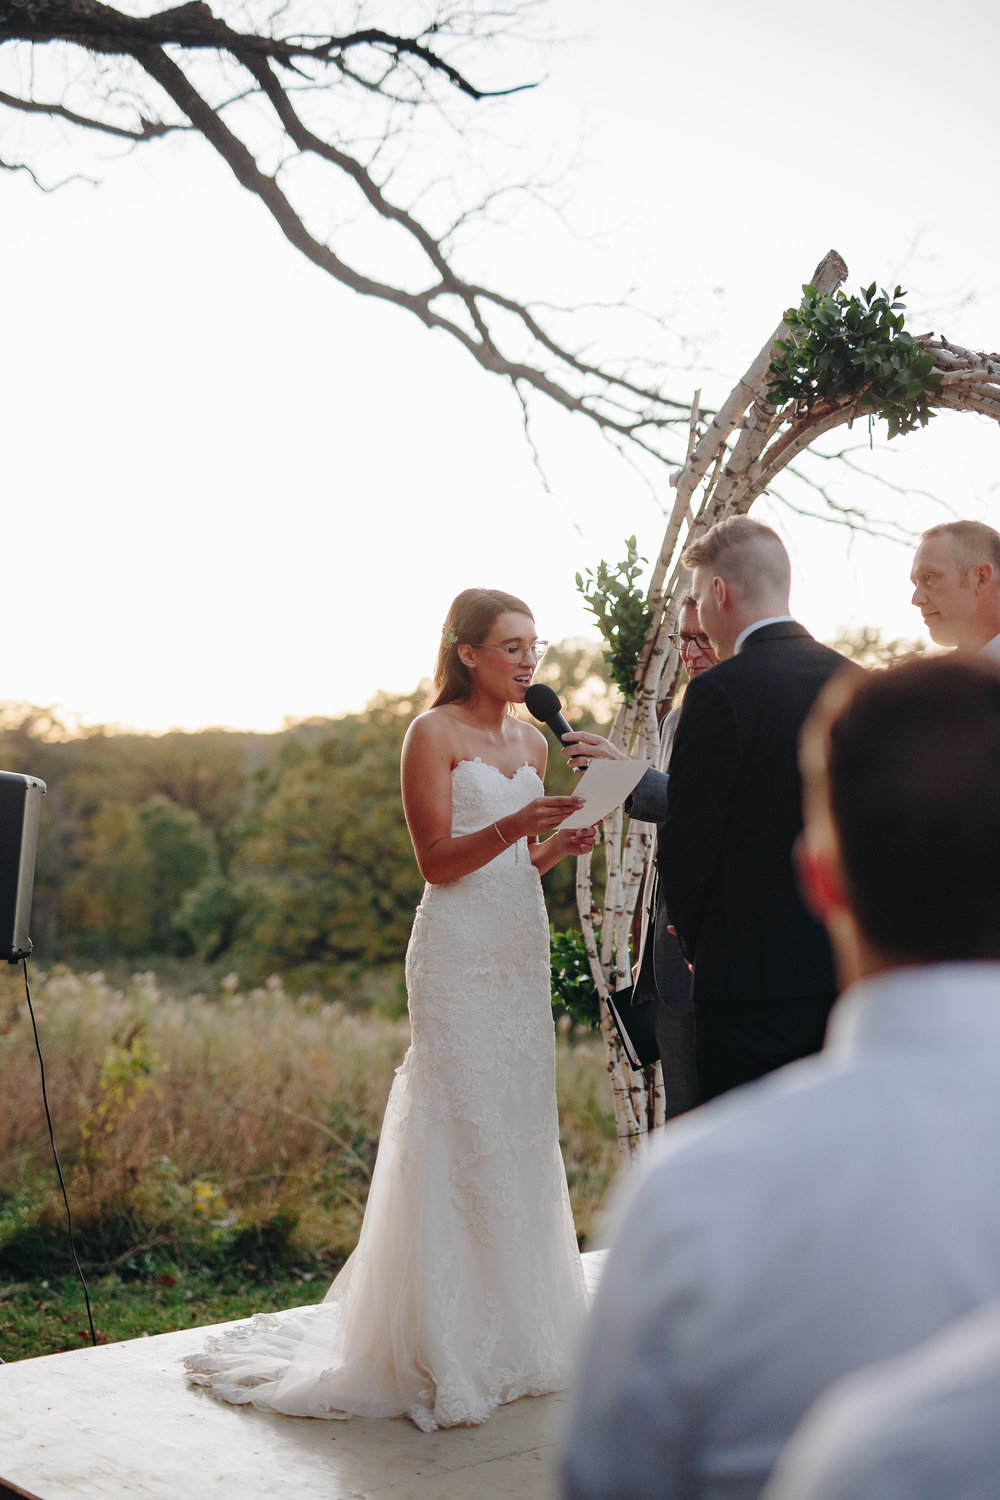 Bride reads her vows to her groom at wedding post sunset ceremony